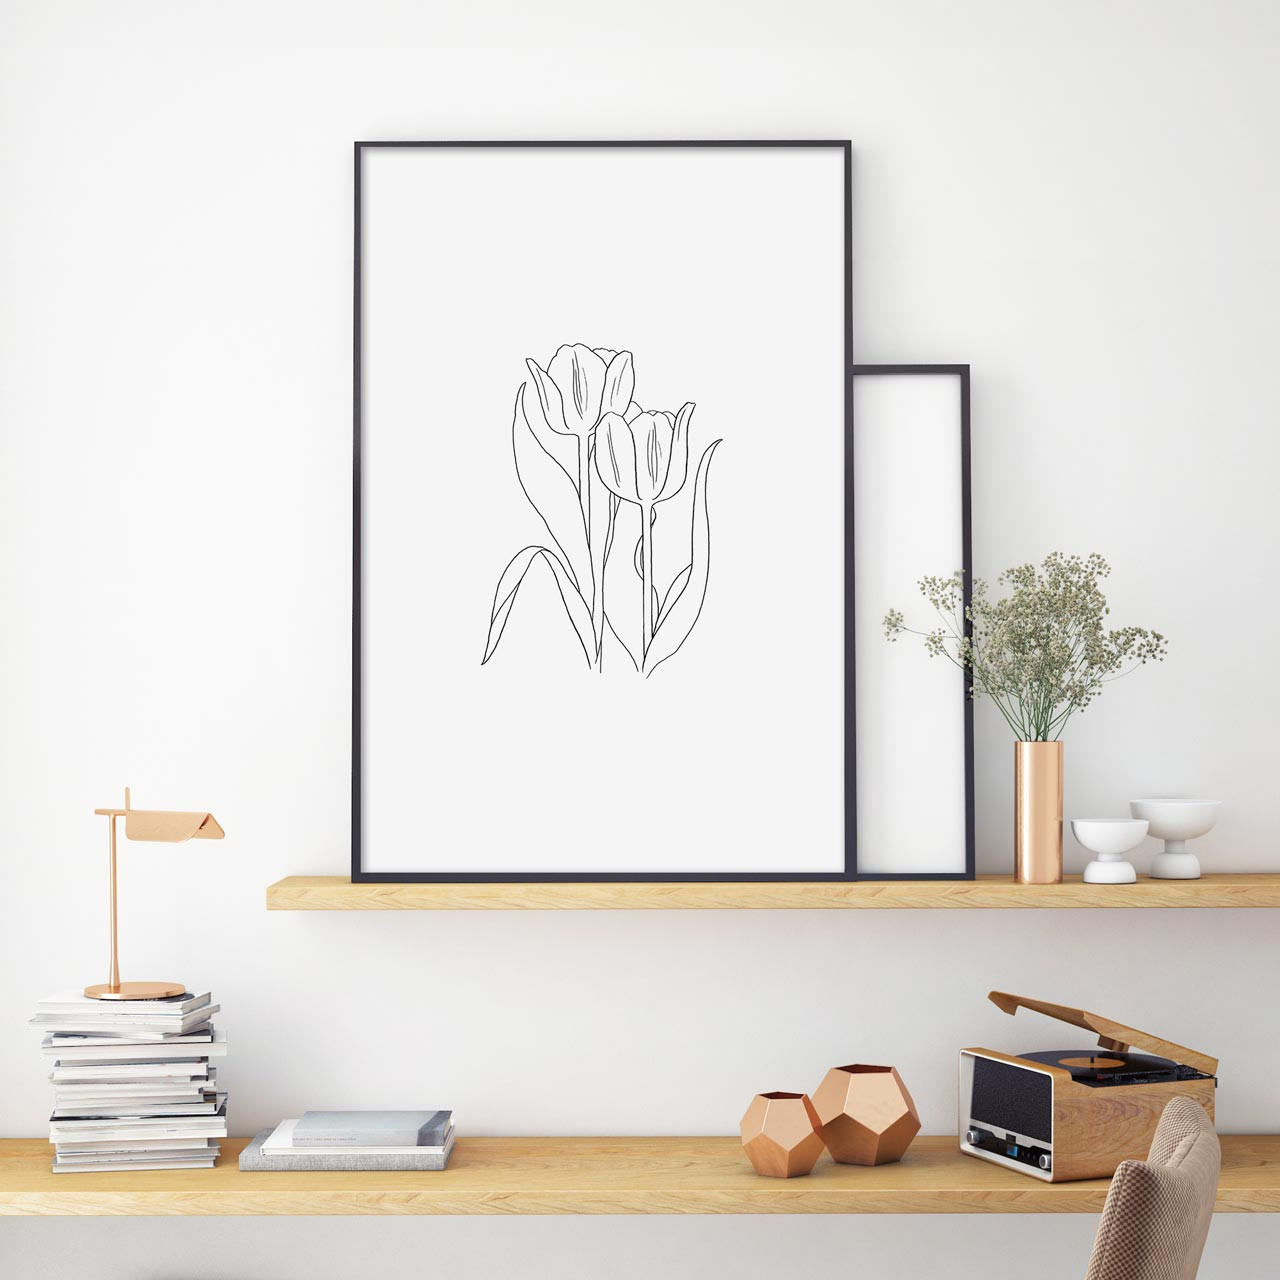 'Tulips' Art Print (ink drawing) from The Printed Home